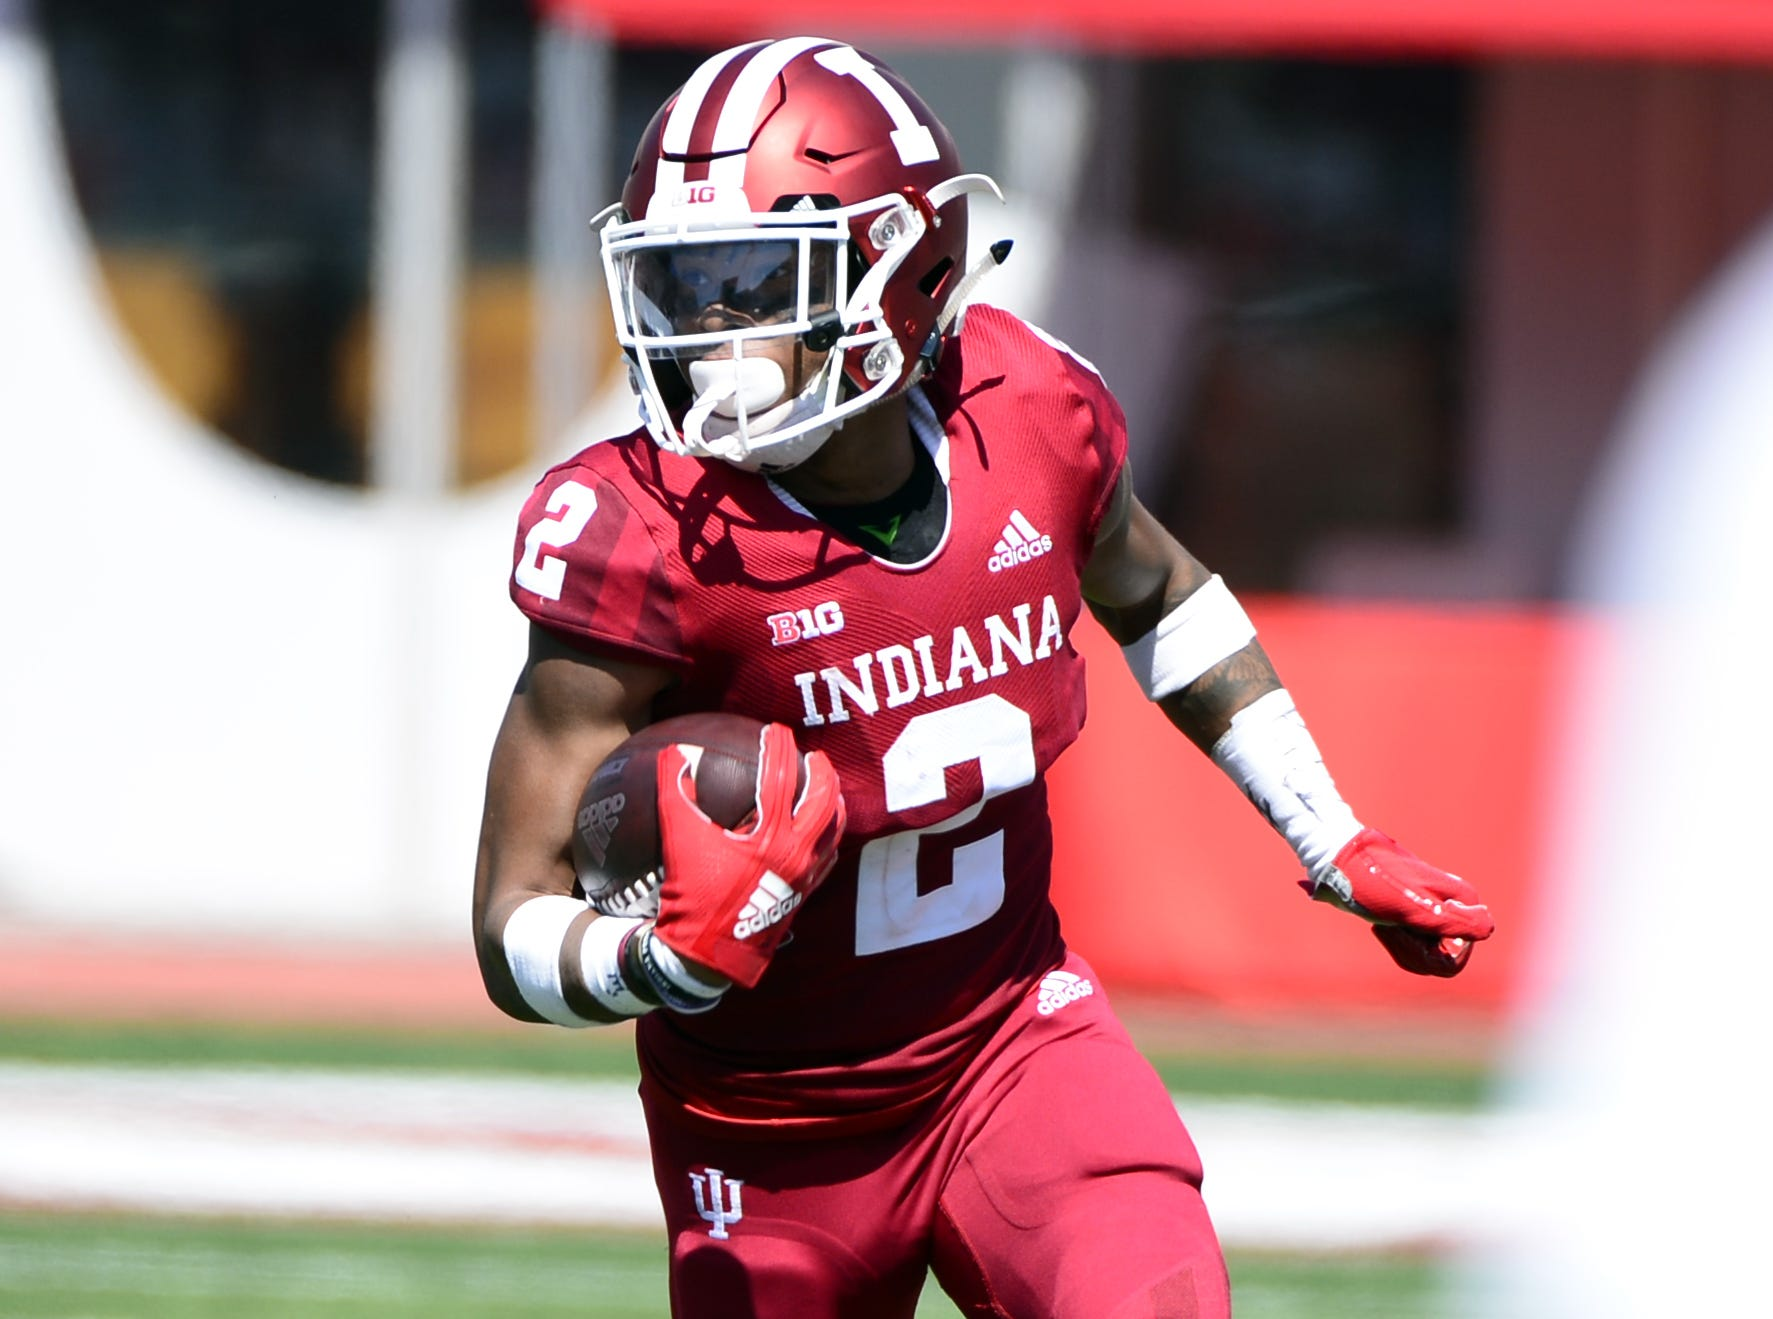 Indiana Hoosiers athlete Reese Taylor (2) runs the ball during the game against Ball State at Memorial Stadium in Bloomington, Ind., on Saturday, Sept. 15, 2018.